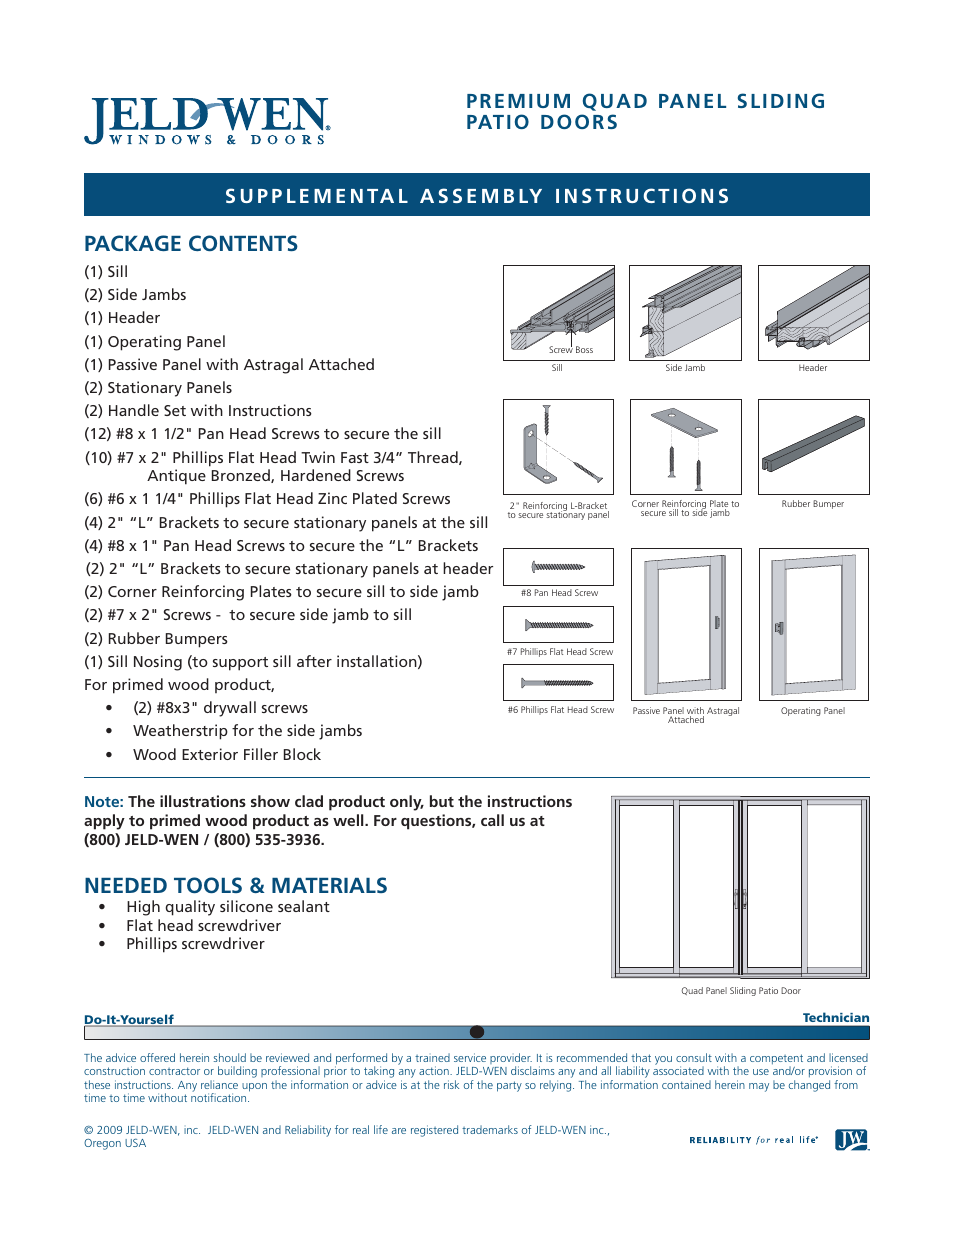 JELD WEN NDS002 Premium Quad Panel Sliding Patio Doors User Manual | 3 Pages